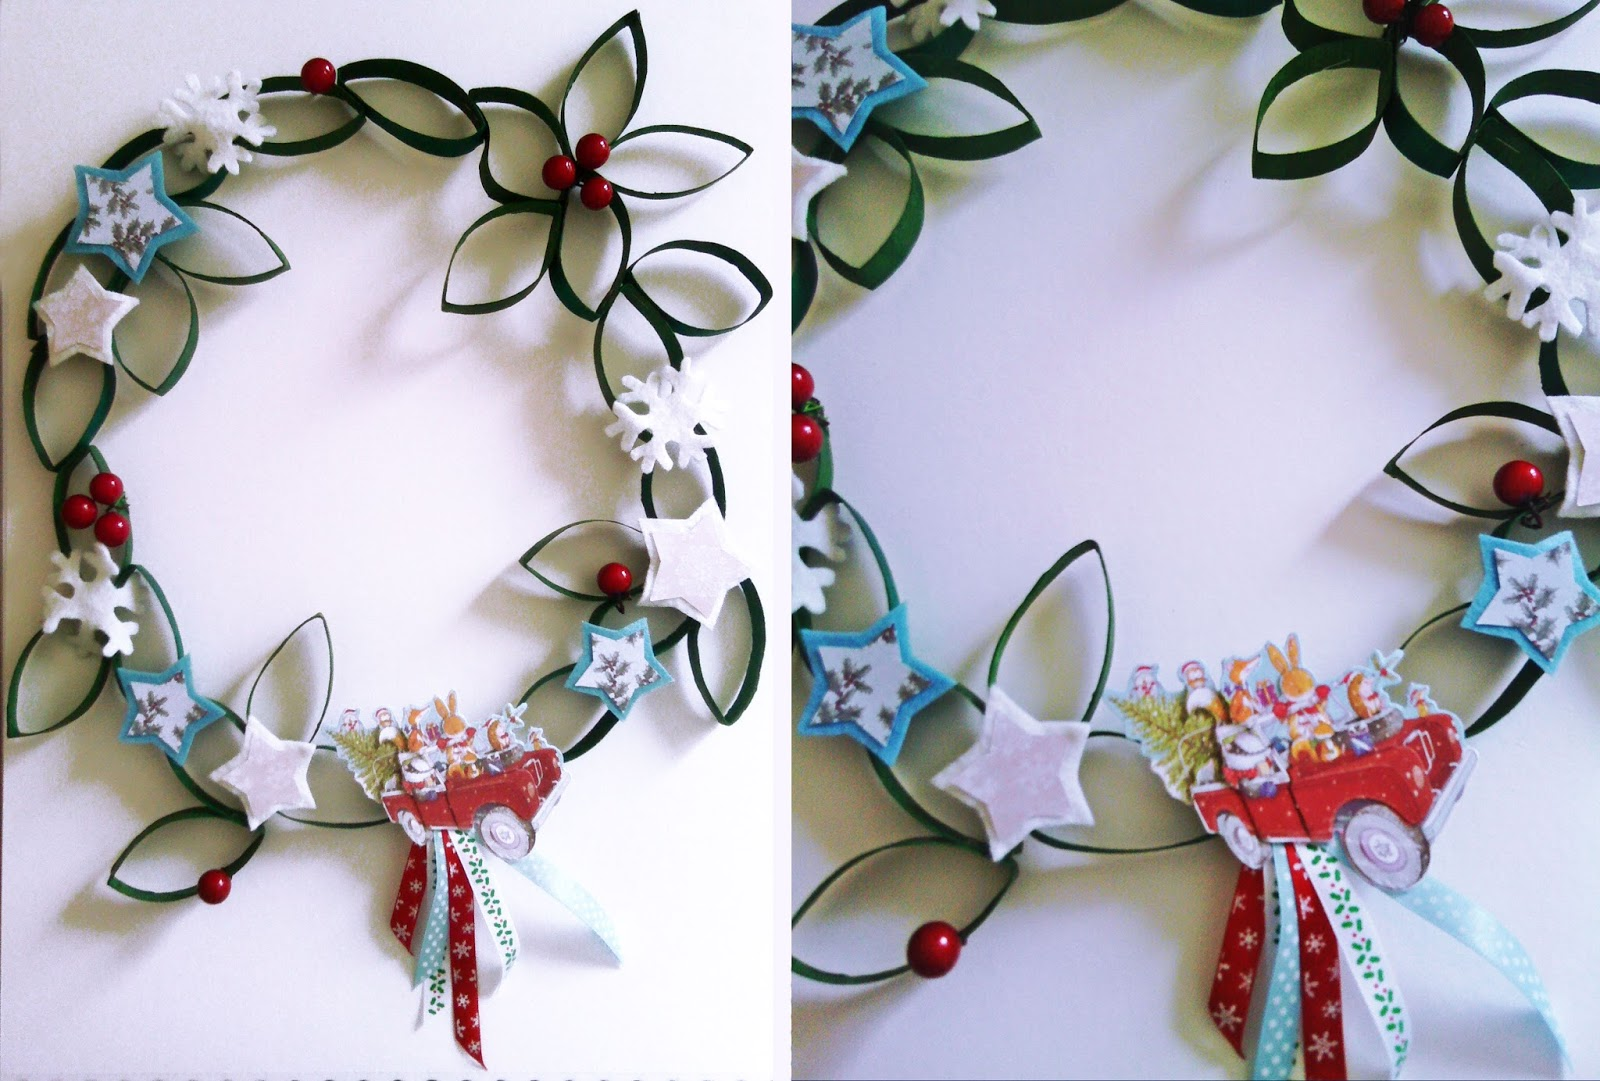 Fraizycircus diy couronne de no l en papier toilette - Creation couronne de noel ...